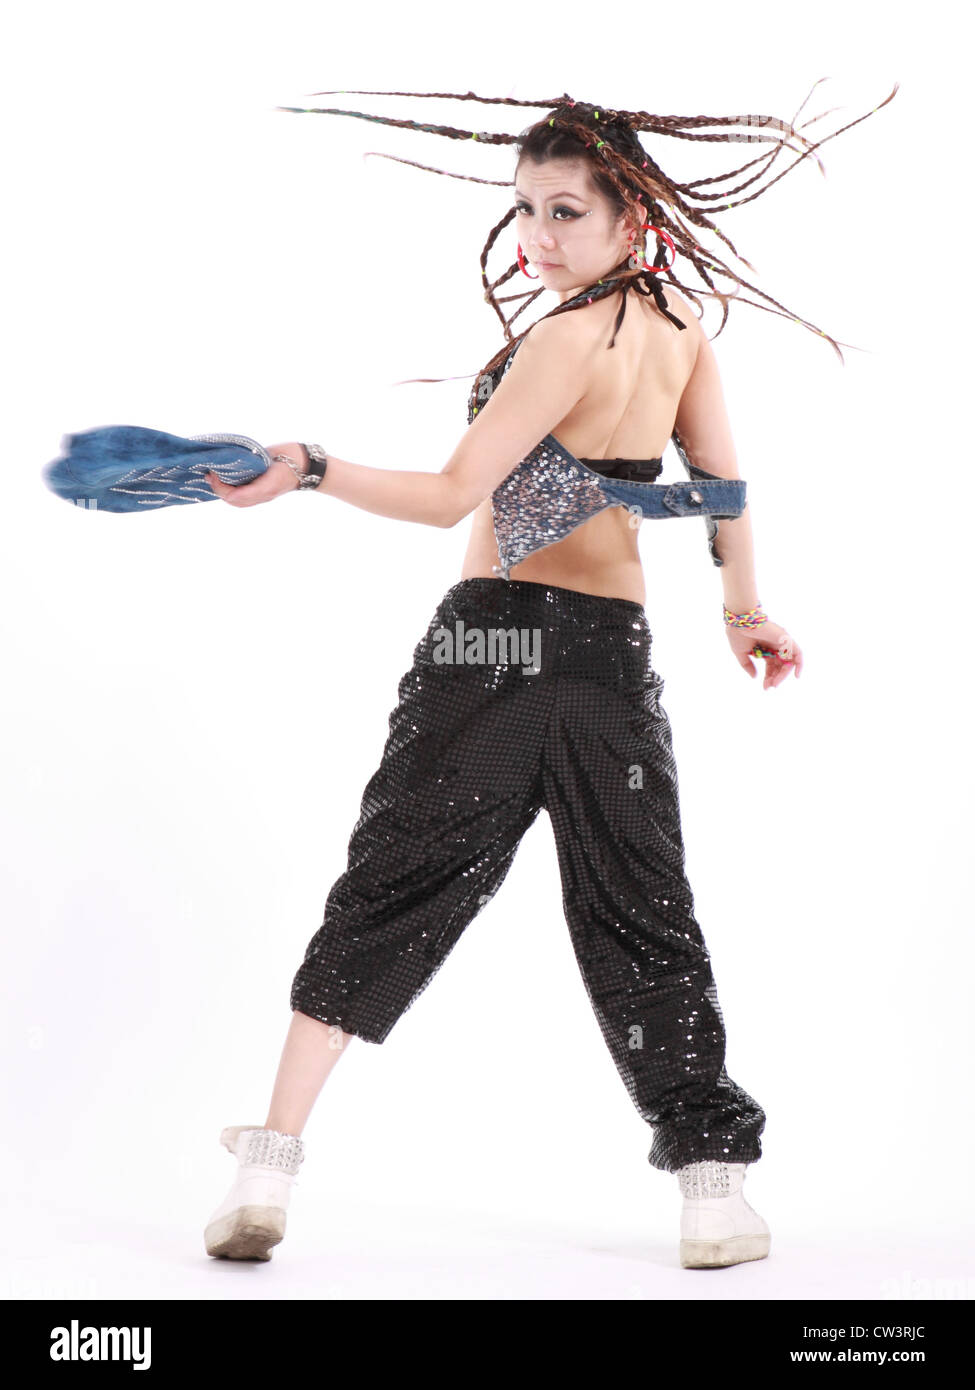 eaf7a212e Cute girl in various dance costumes and fun poses Stock Photo ...